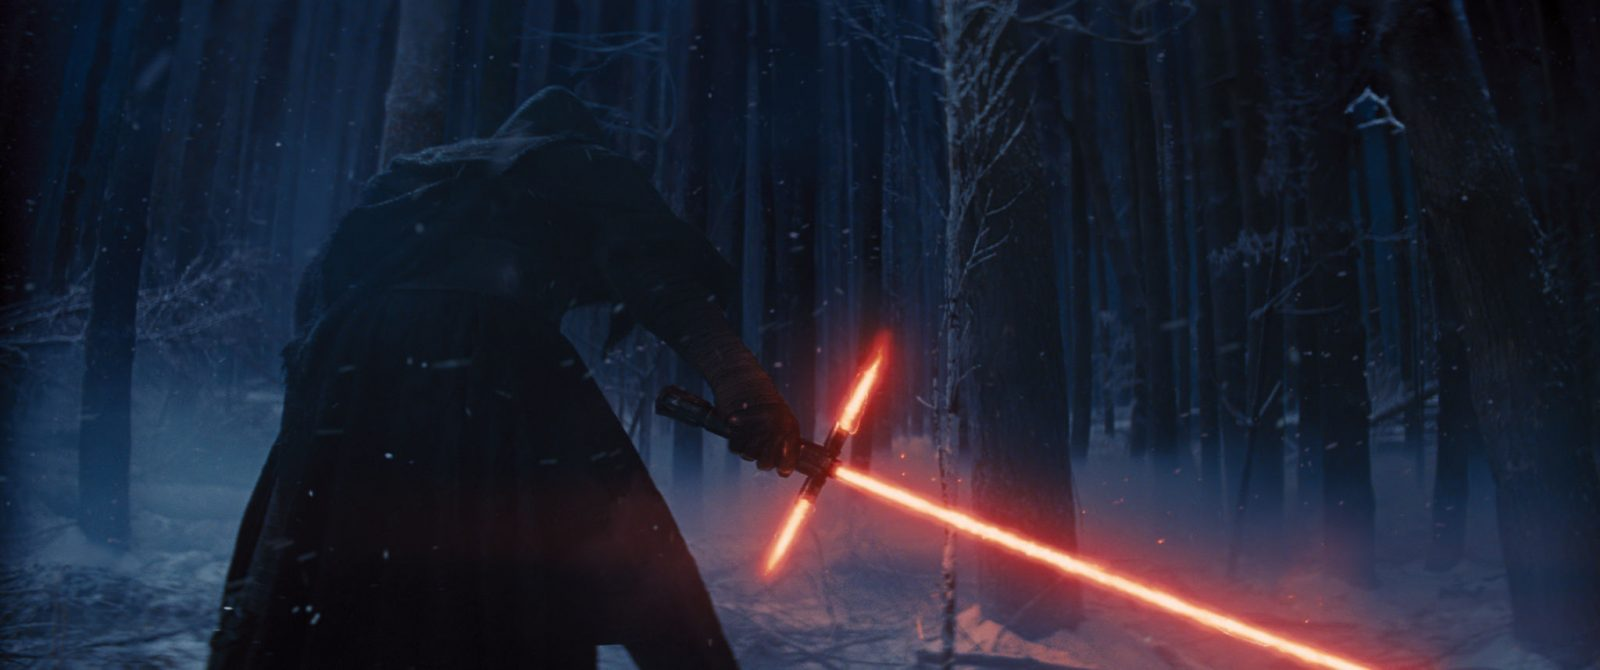 Star Wars VII The Force Awakens 41 - Kylo Ren and lightsaber